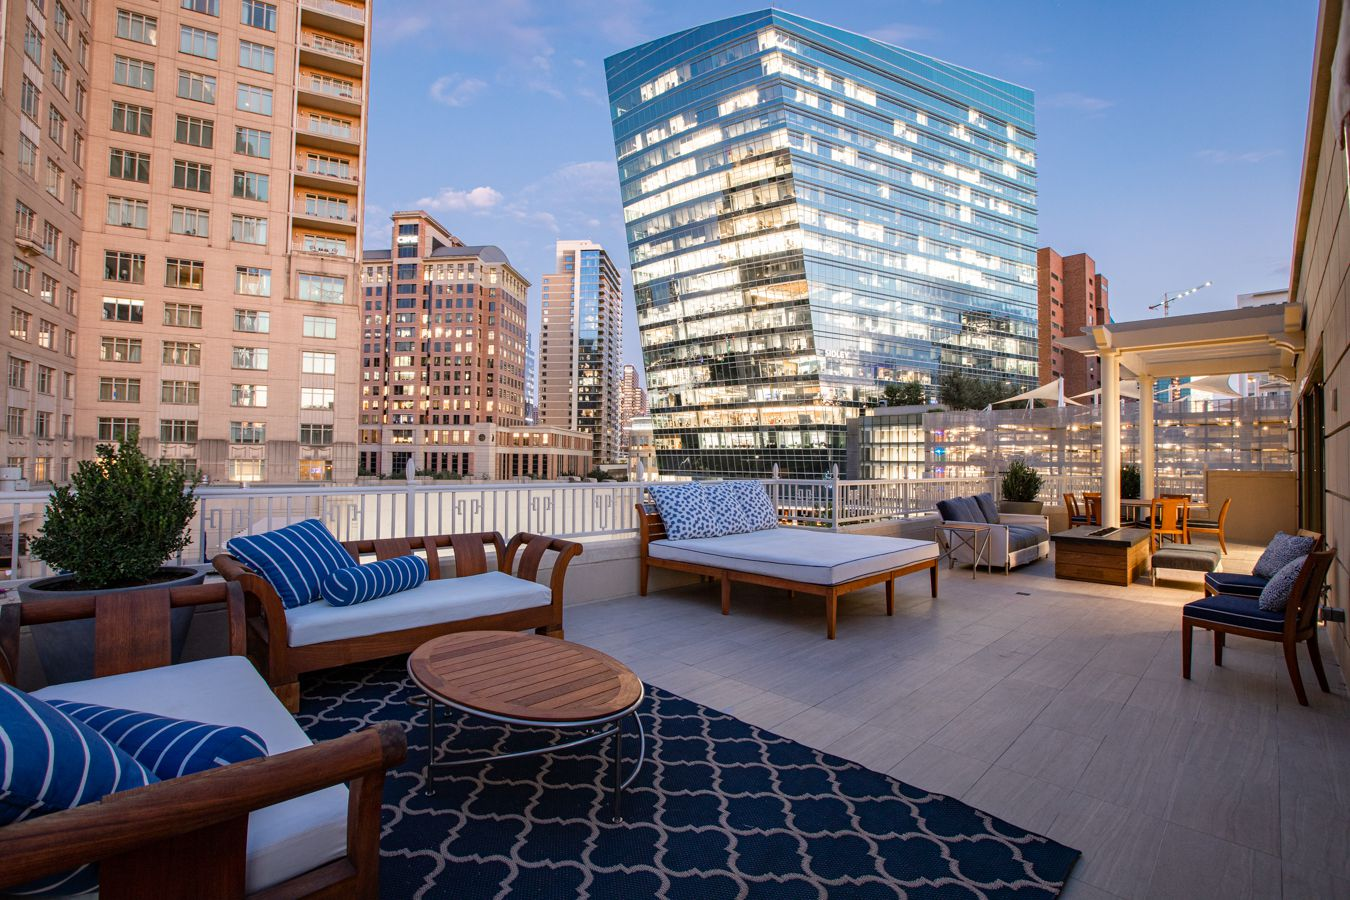 The rooftop terrace at Regency Row.